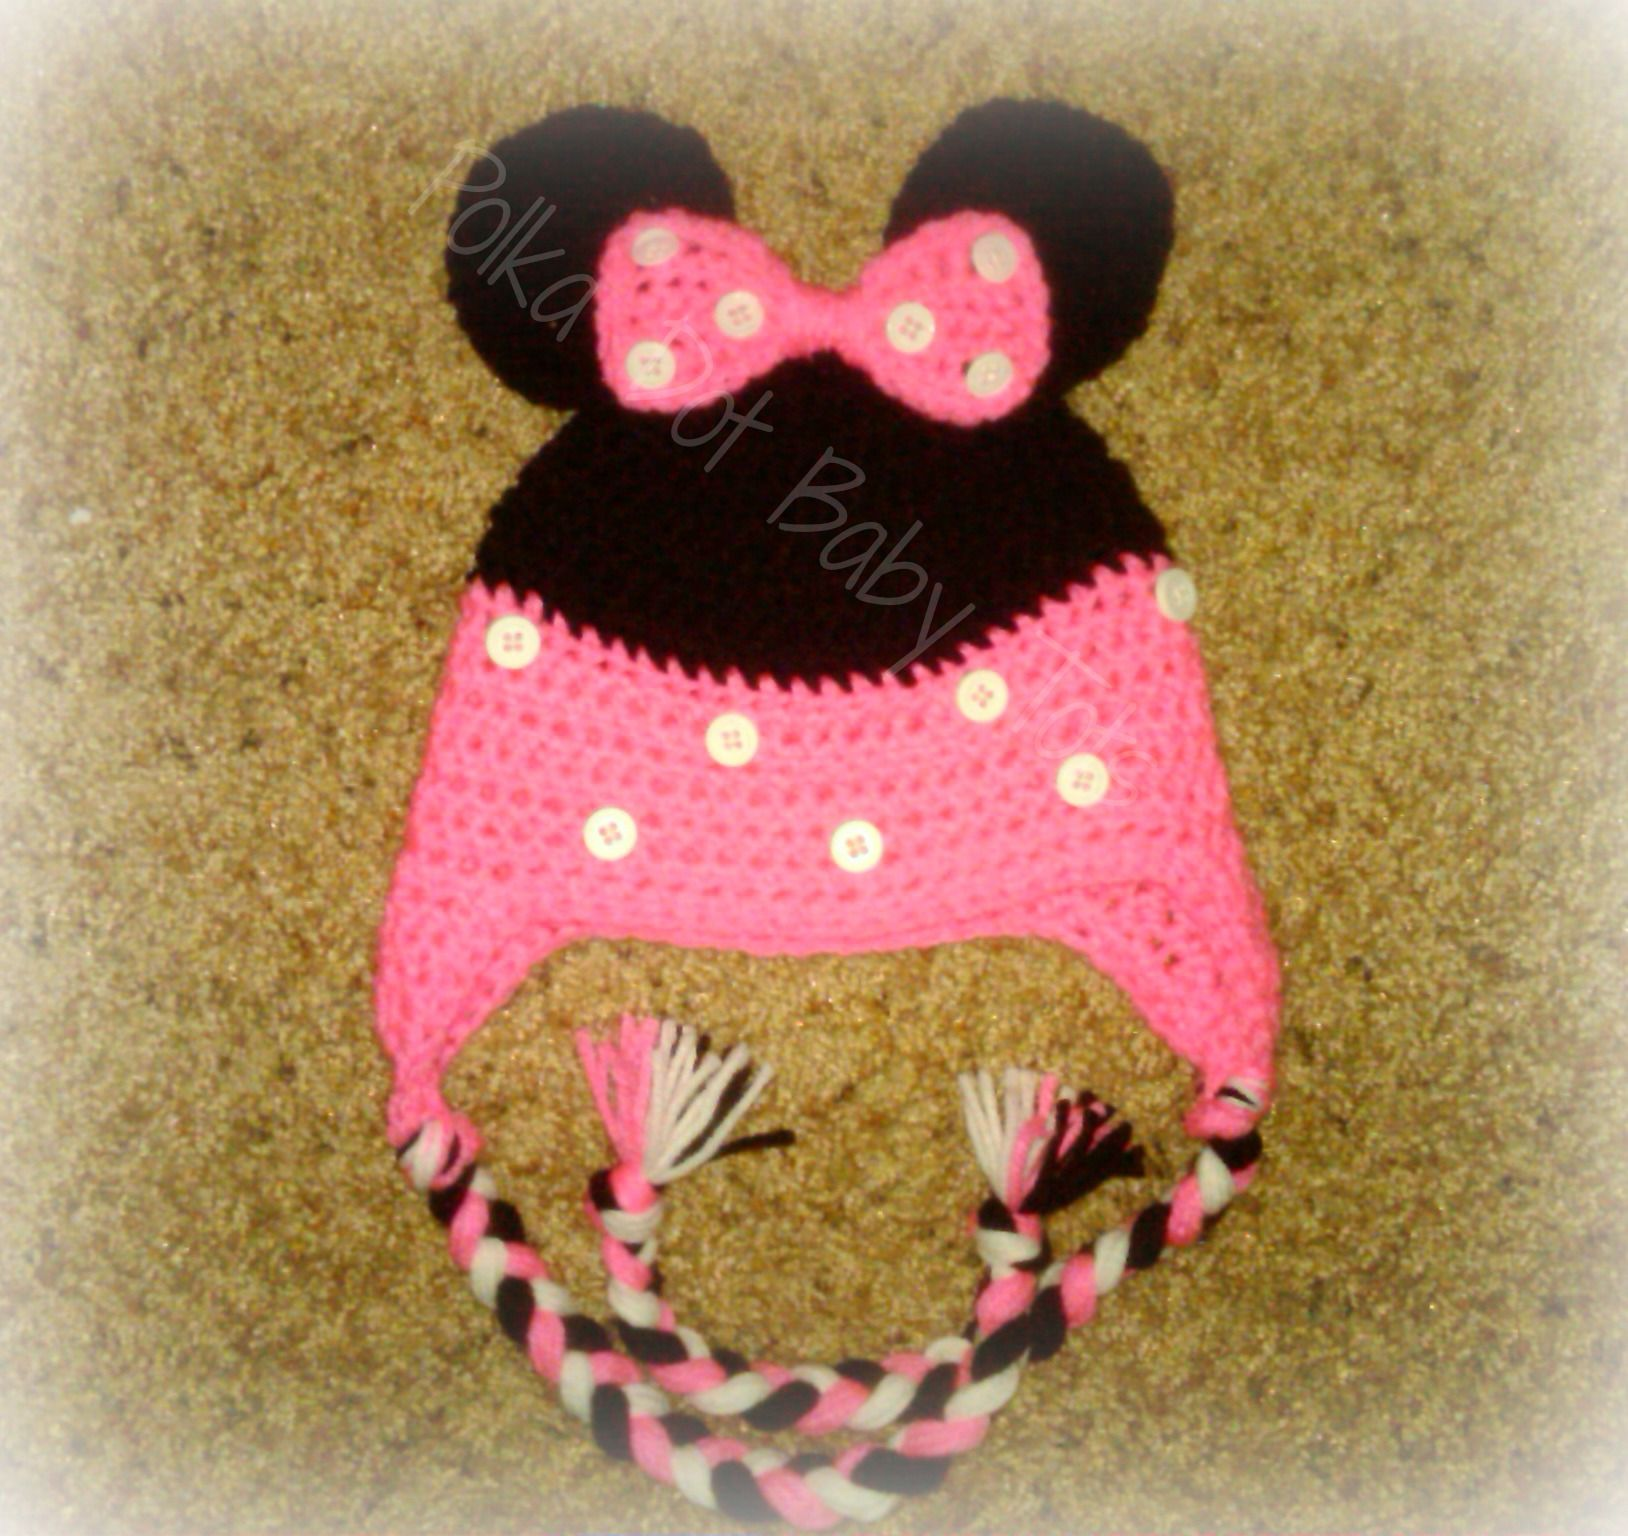 Full of Buttons Minnie inspired hat www.facebook.com/polkadotbabytots